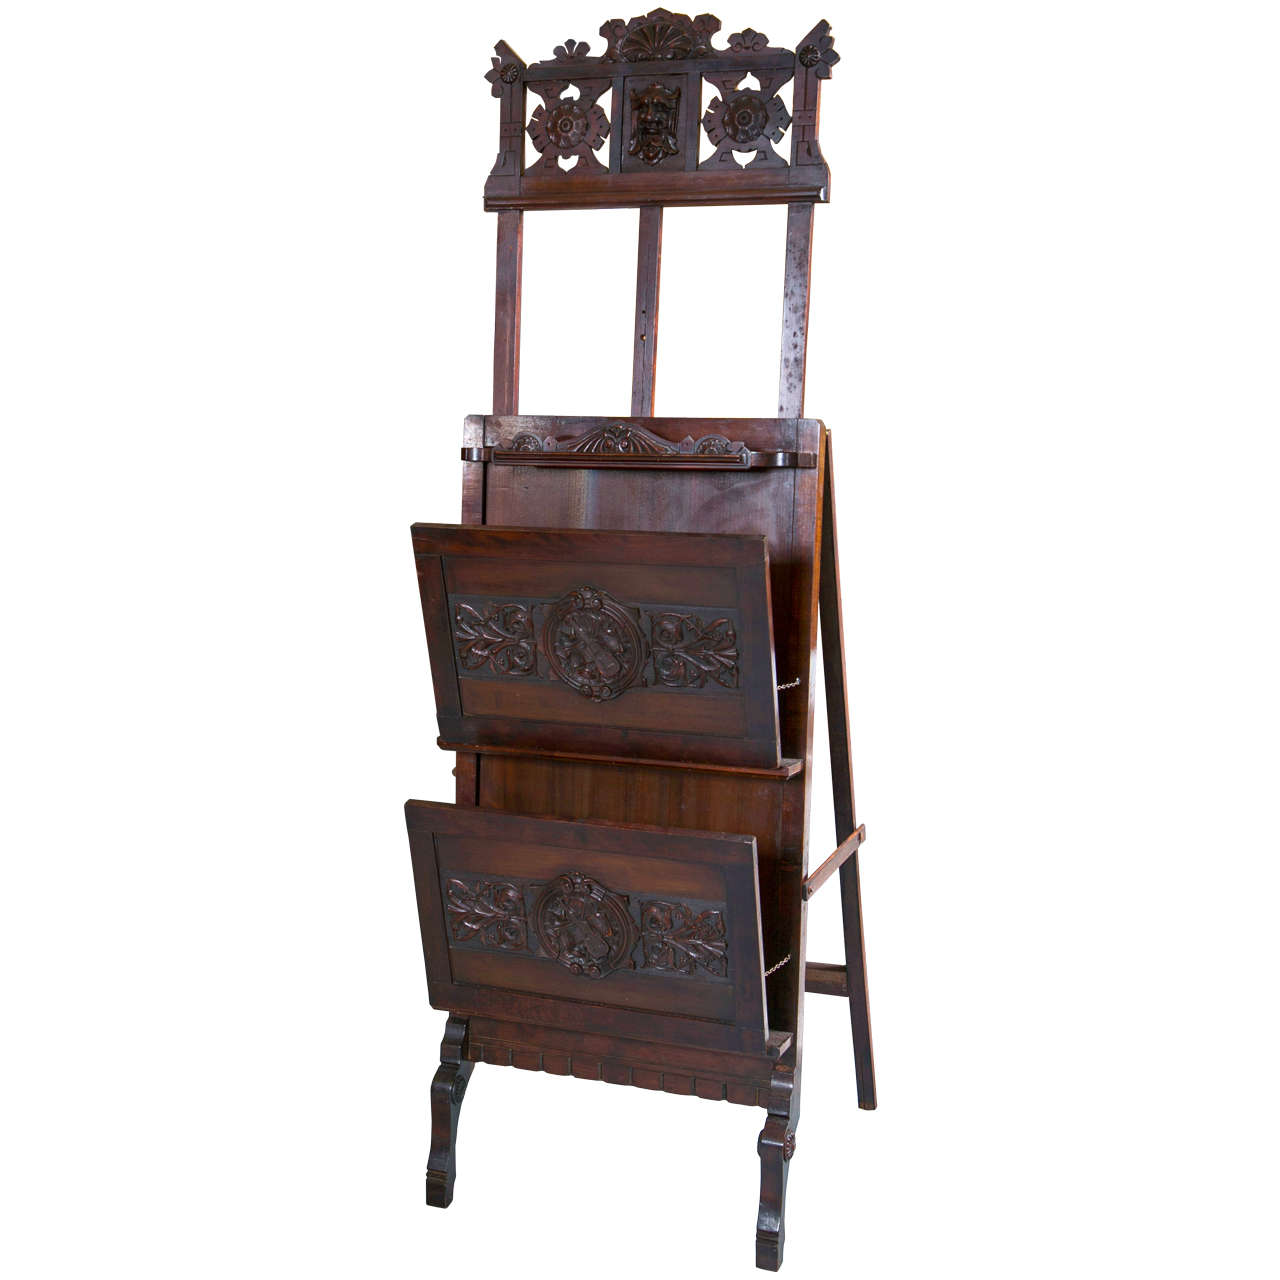 Victorian Tv Stand: Antique Victorian Easel And Music Stand For Sale At 1stdibs